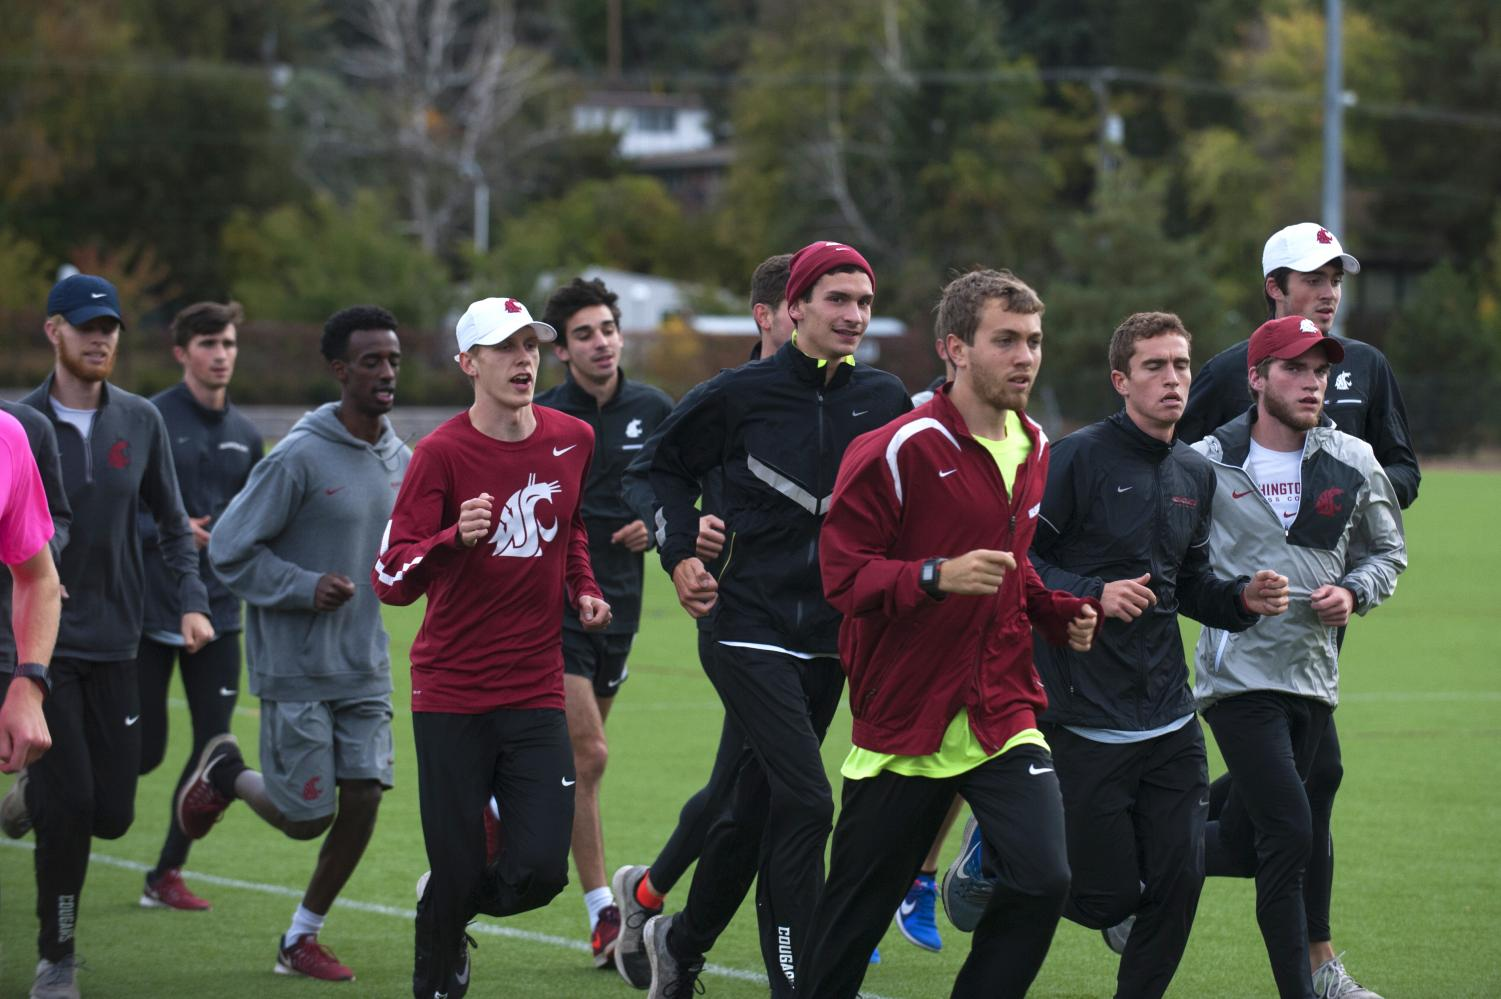 Members of the 2016 men's cross country team run during practice October 2016 at the Valley Road Playfields.